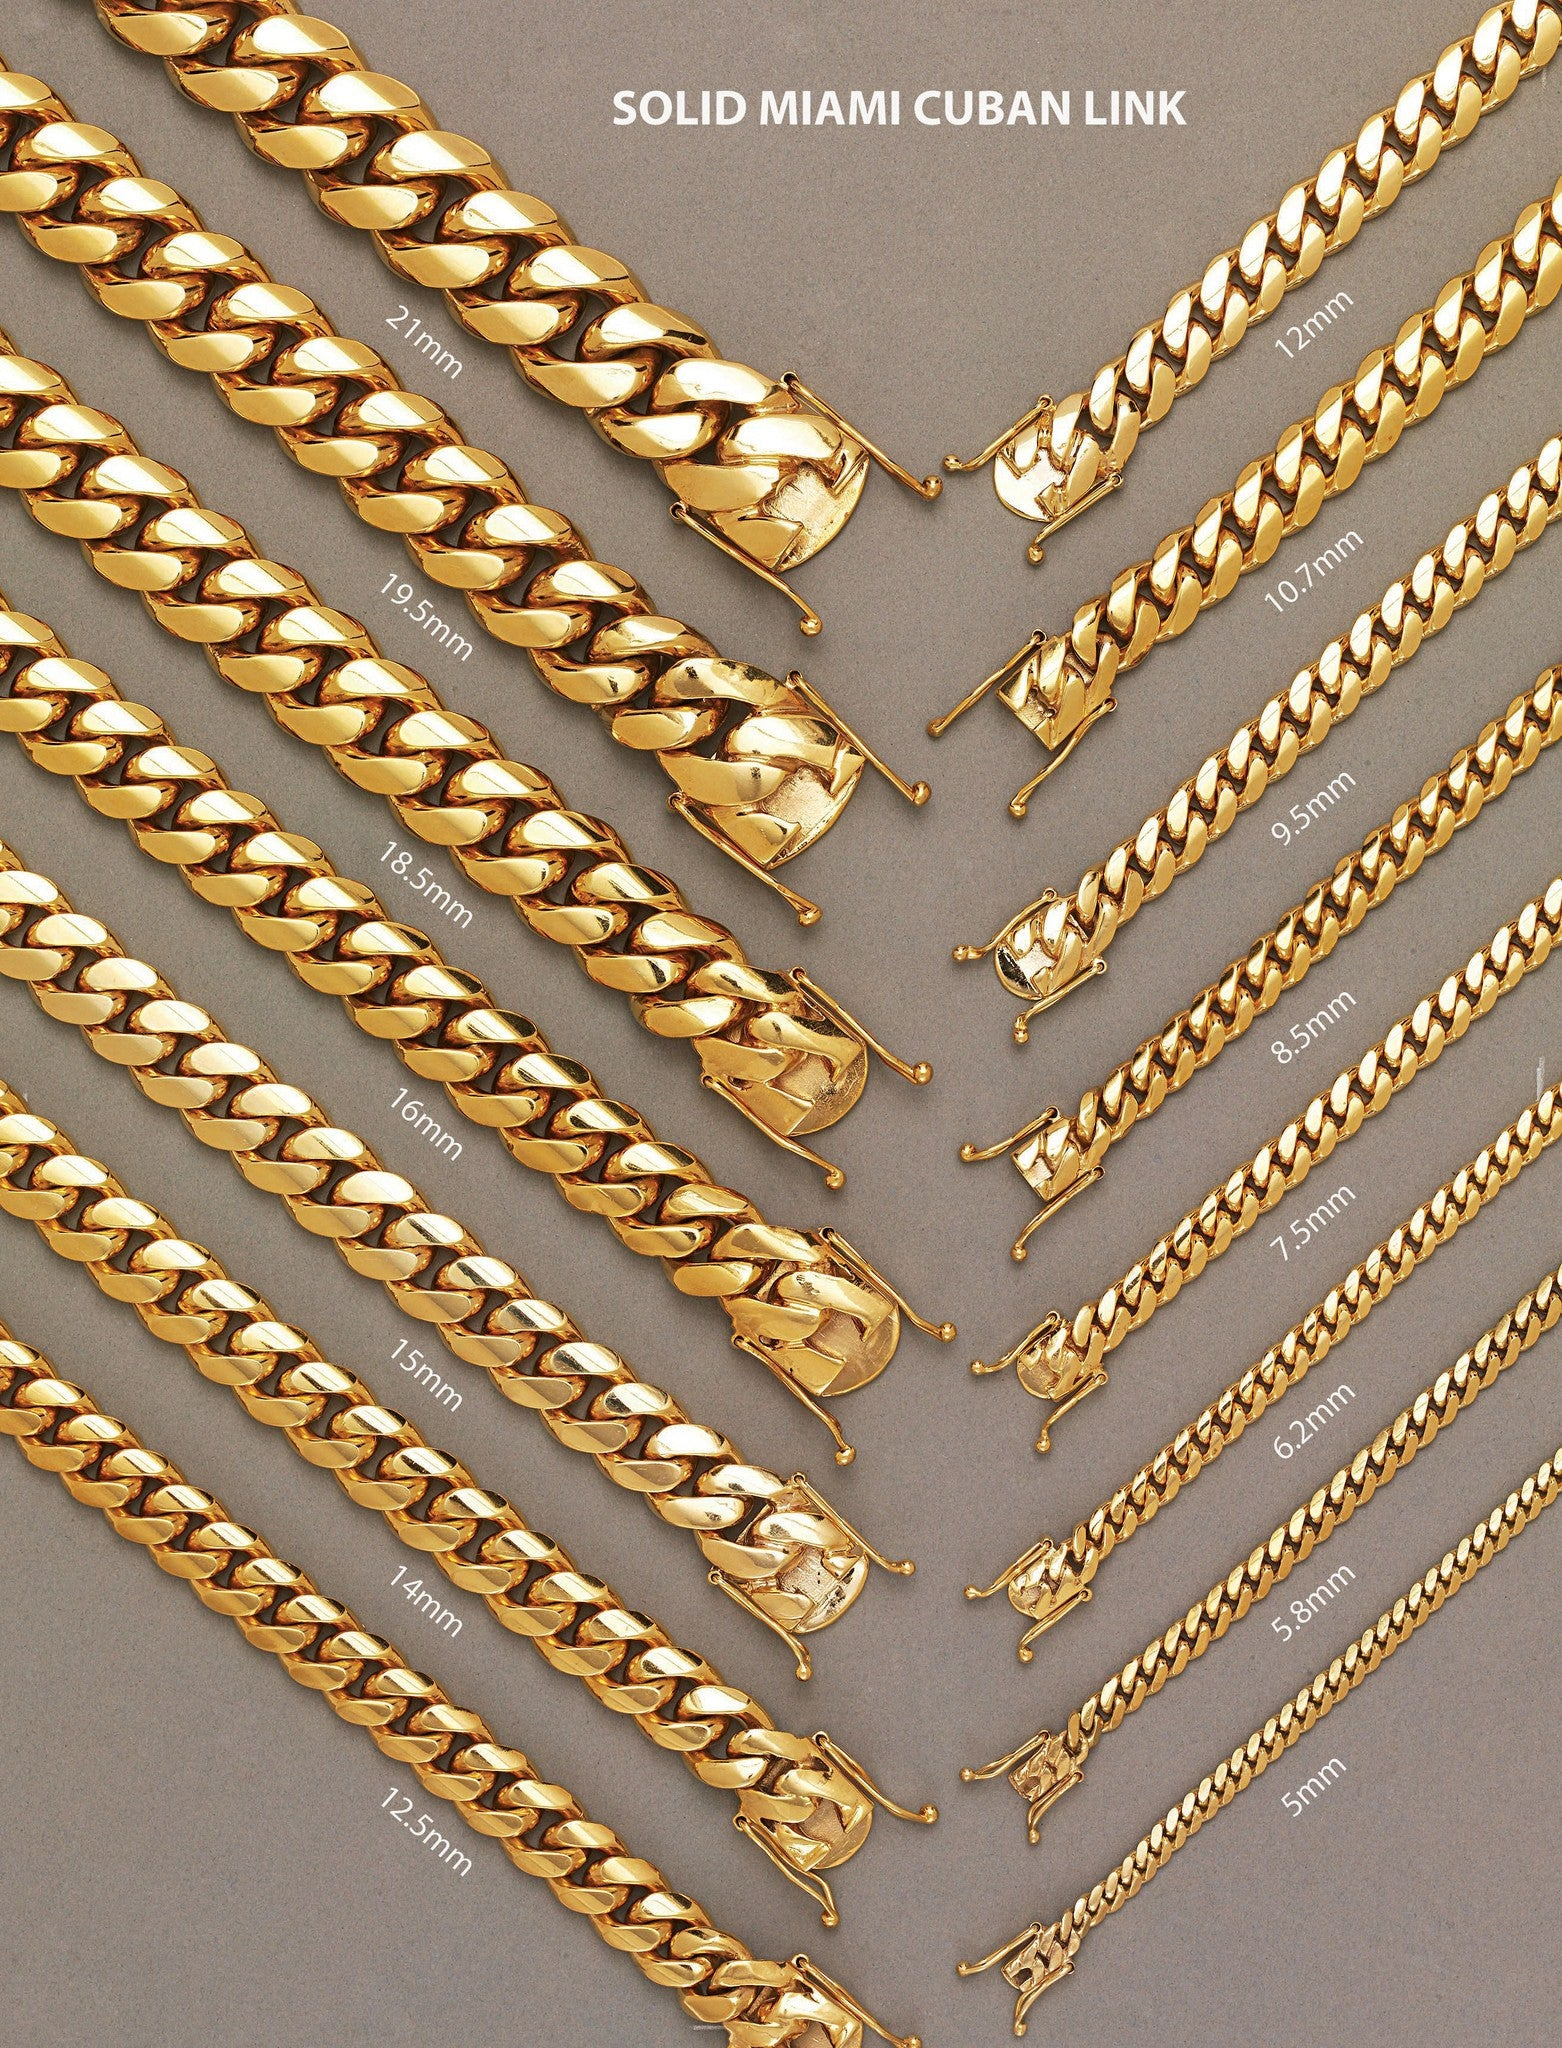 c84452643abfa Solid Mens Miami Cuban Link Bracelet 10K Yellow Gold – FrostNYC